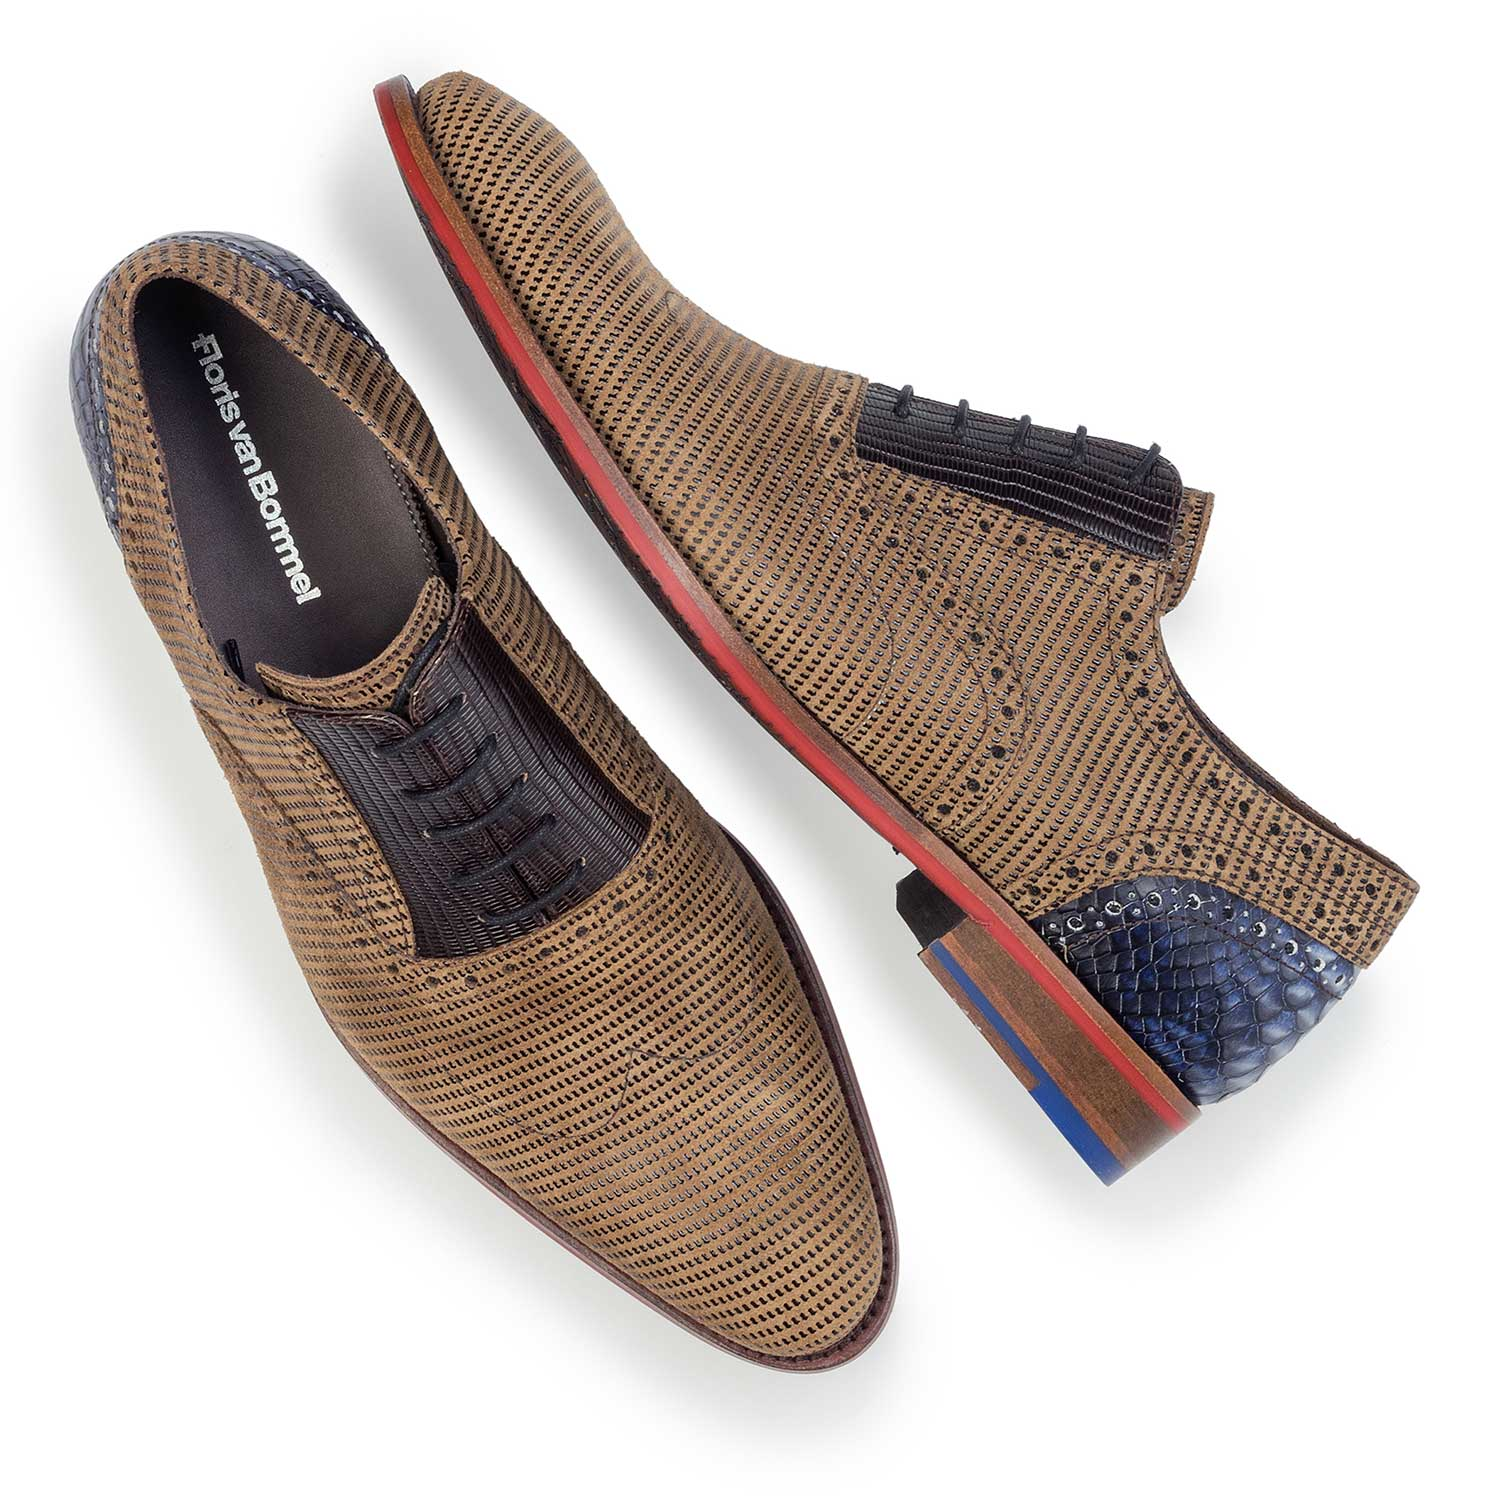 19114/07 - Camel-coloured suede leather lace shoe with pattern